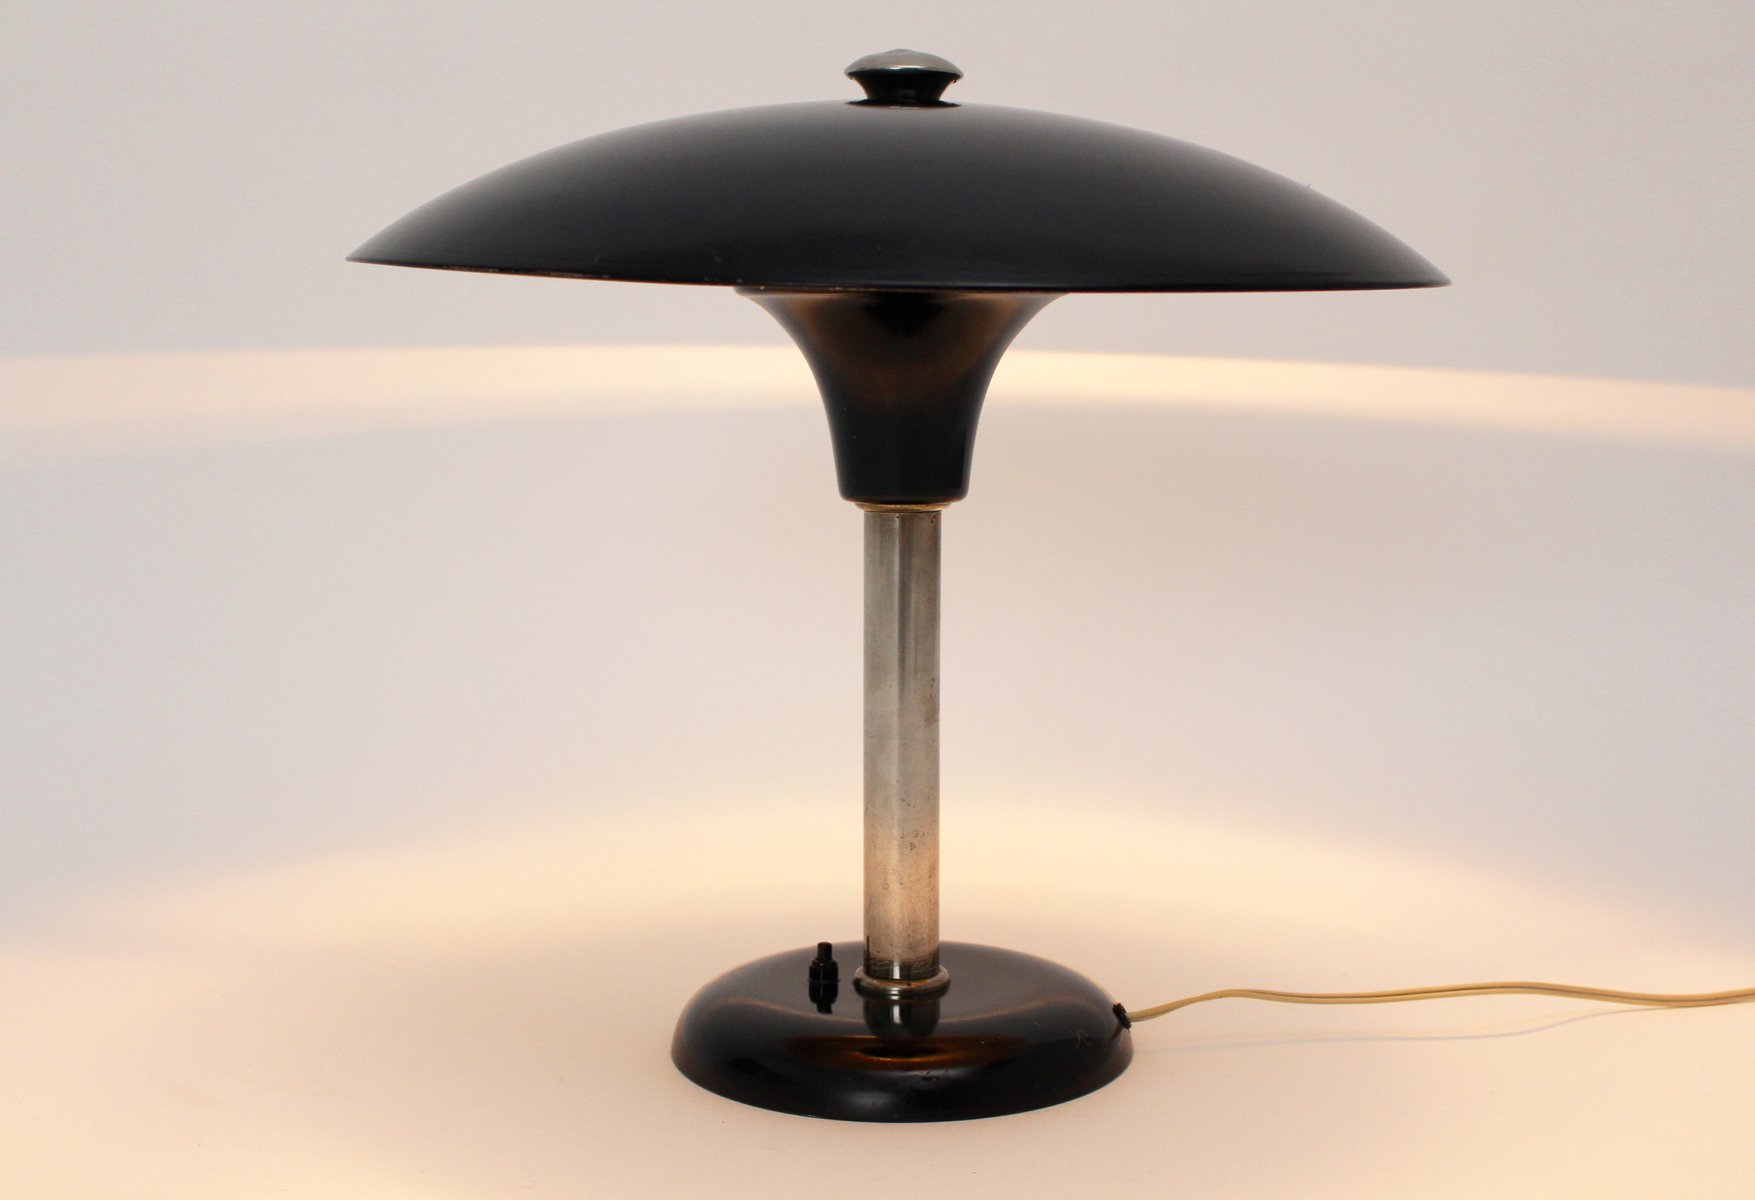 Art Deco Table Lamp By Max Schumacher For Werner Schroeder 1934